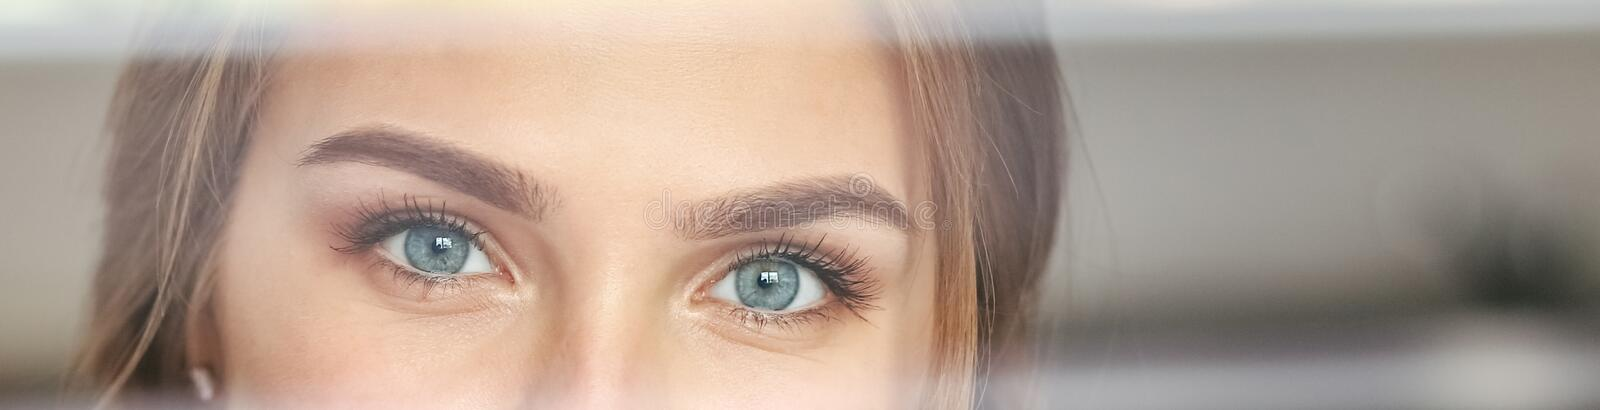 Beautiful female eyes. Banner for website. Concept of lifestyle, royalty free stock images